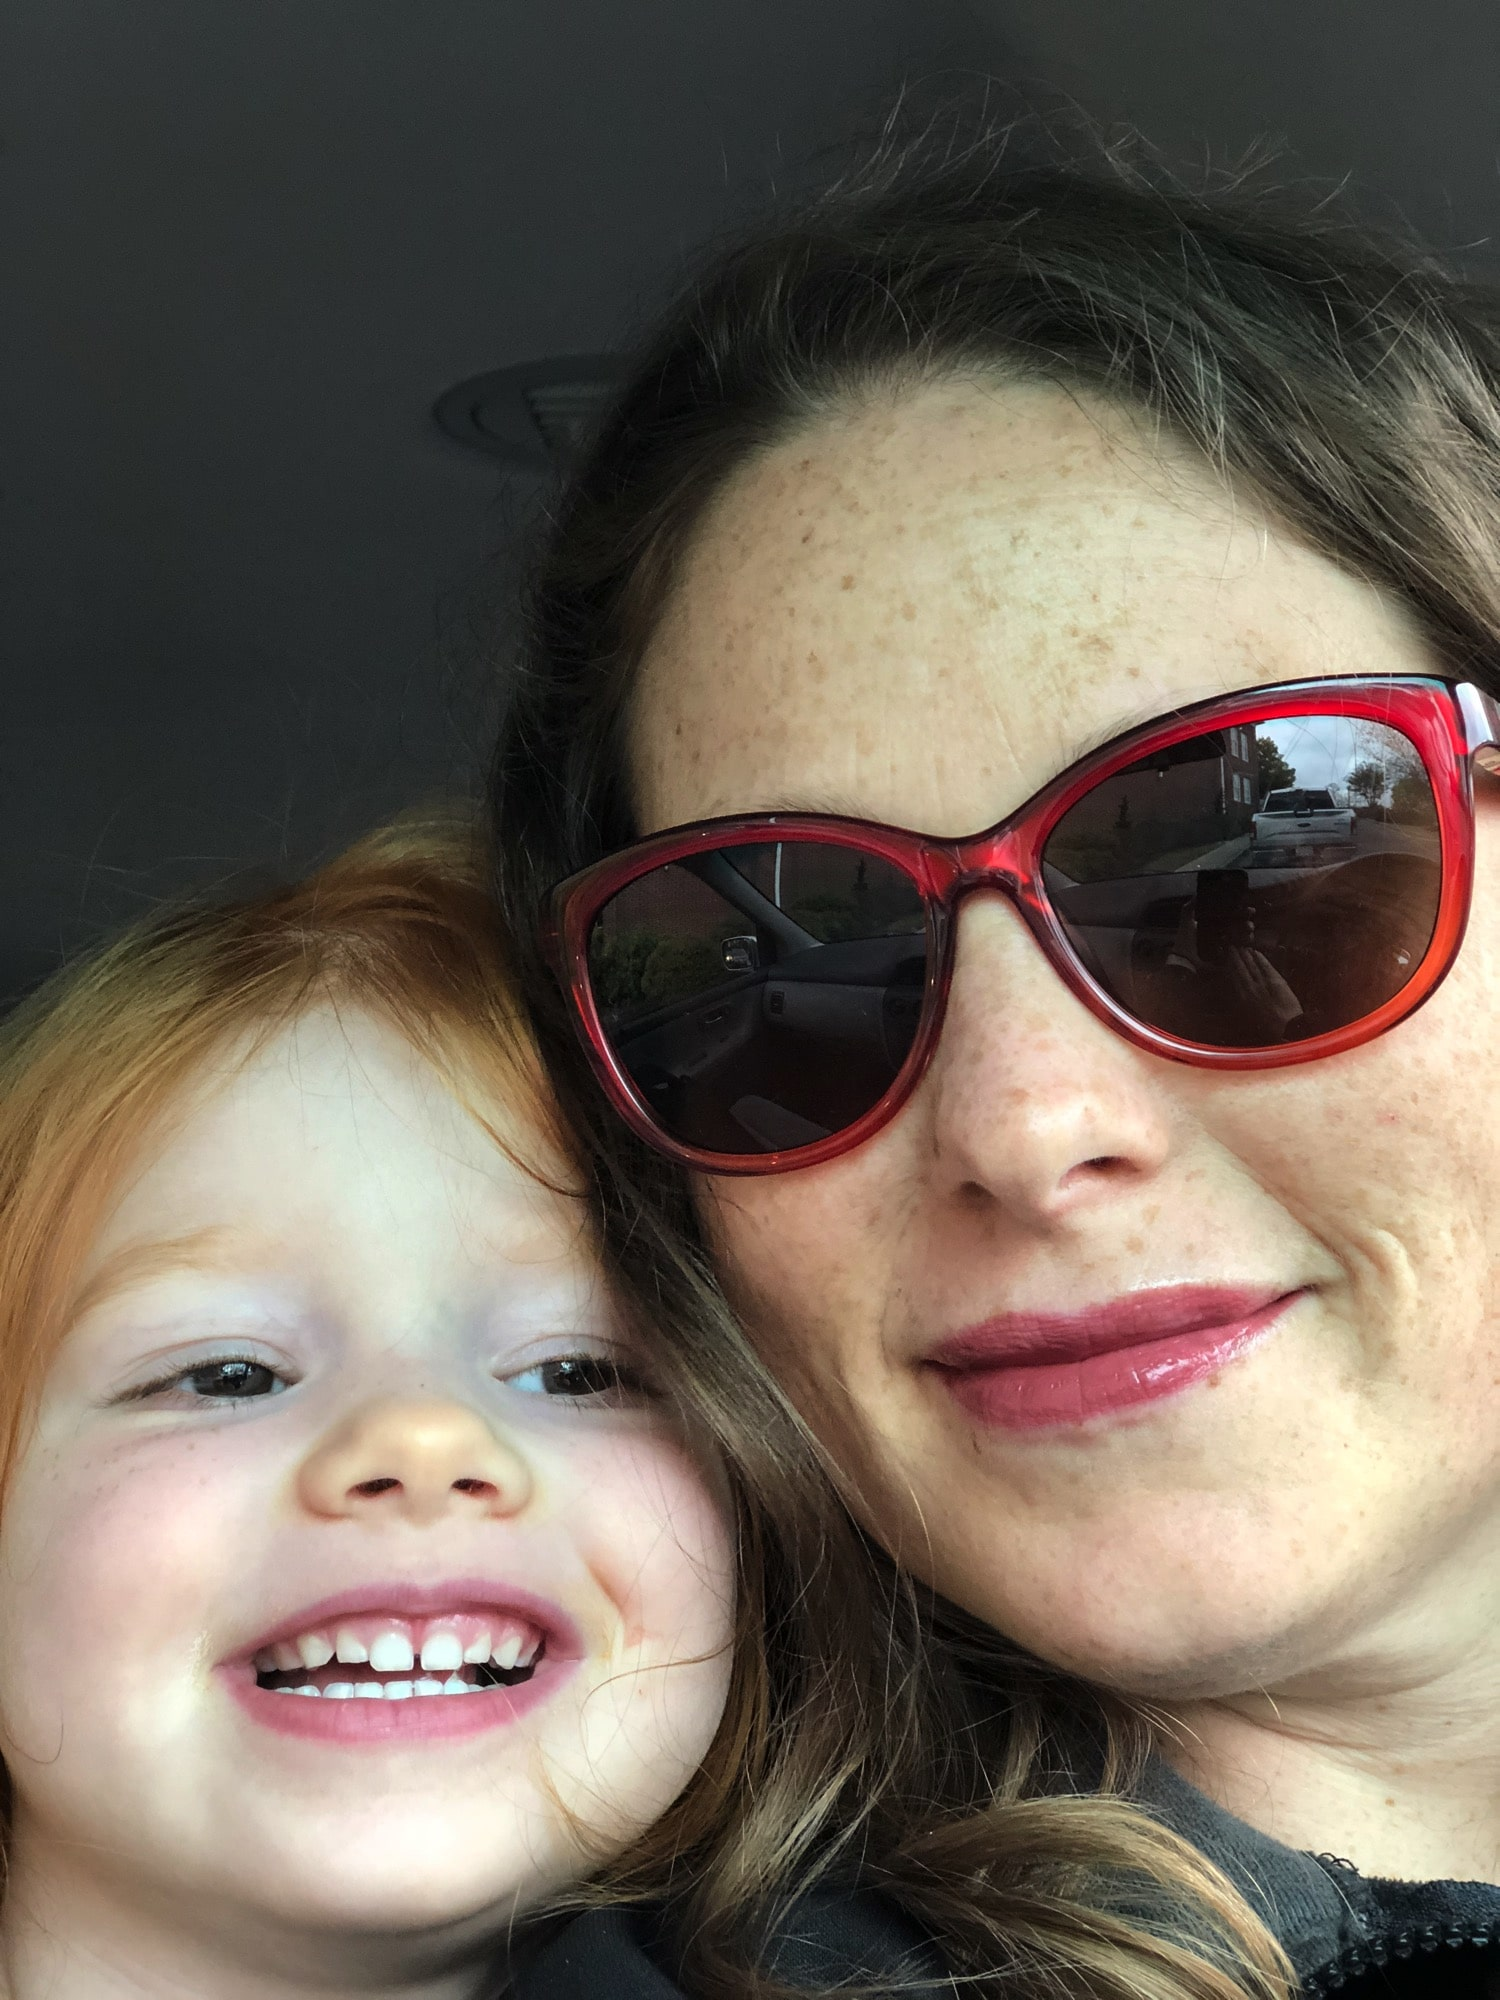 Cartime selfie | Mommy and Me Monday